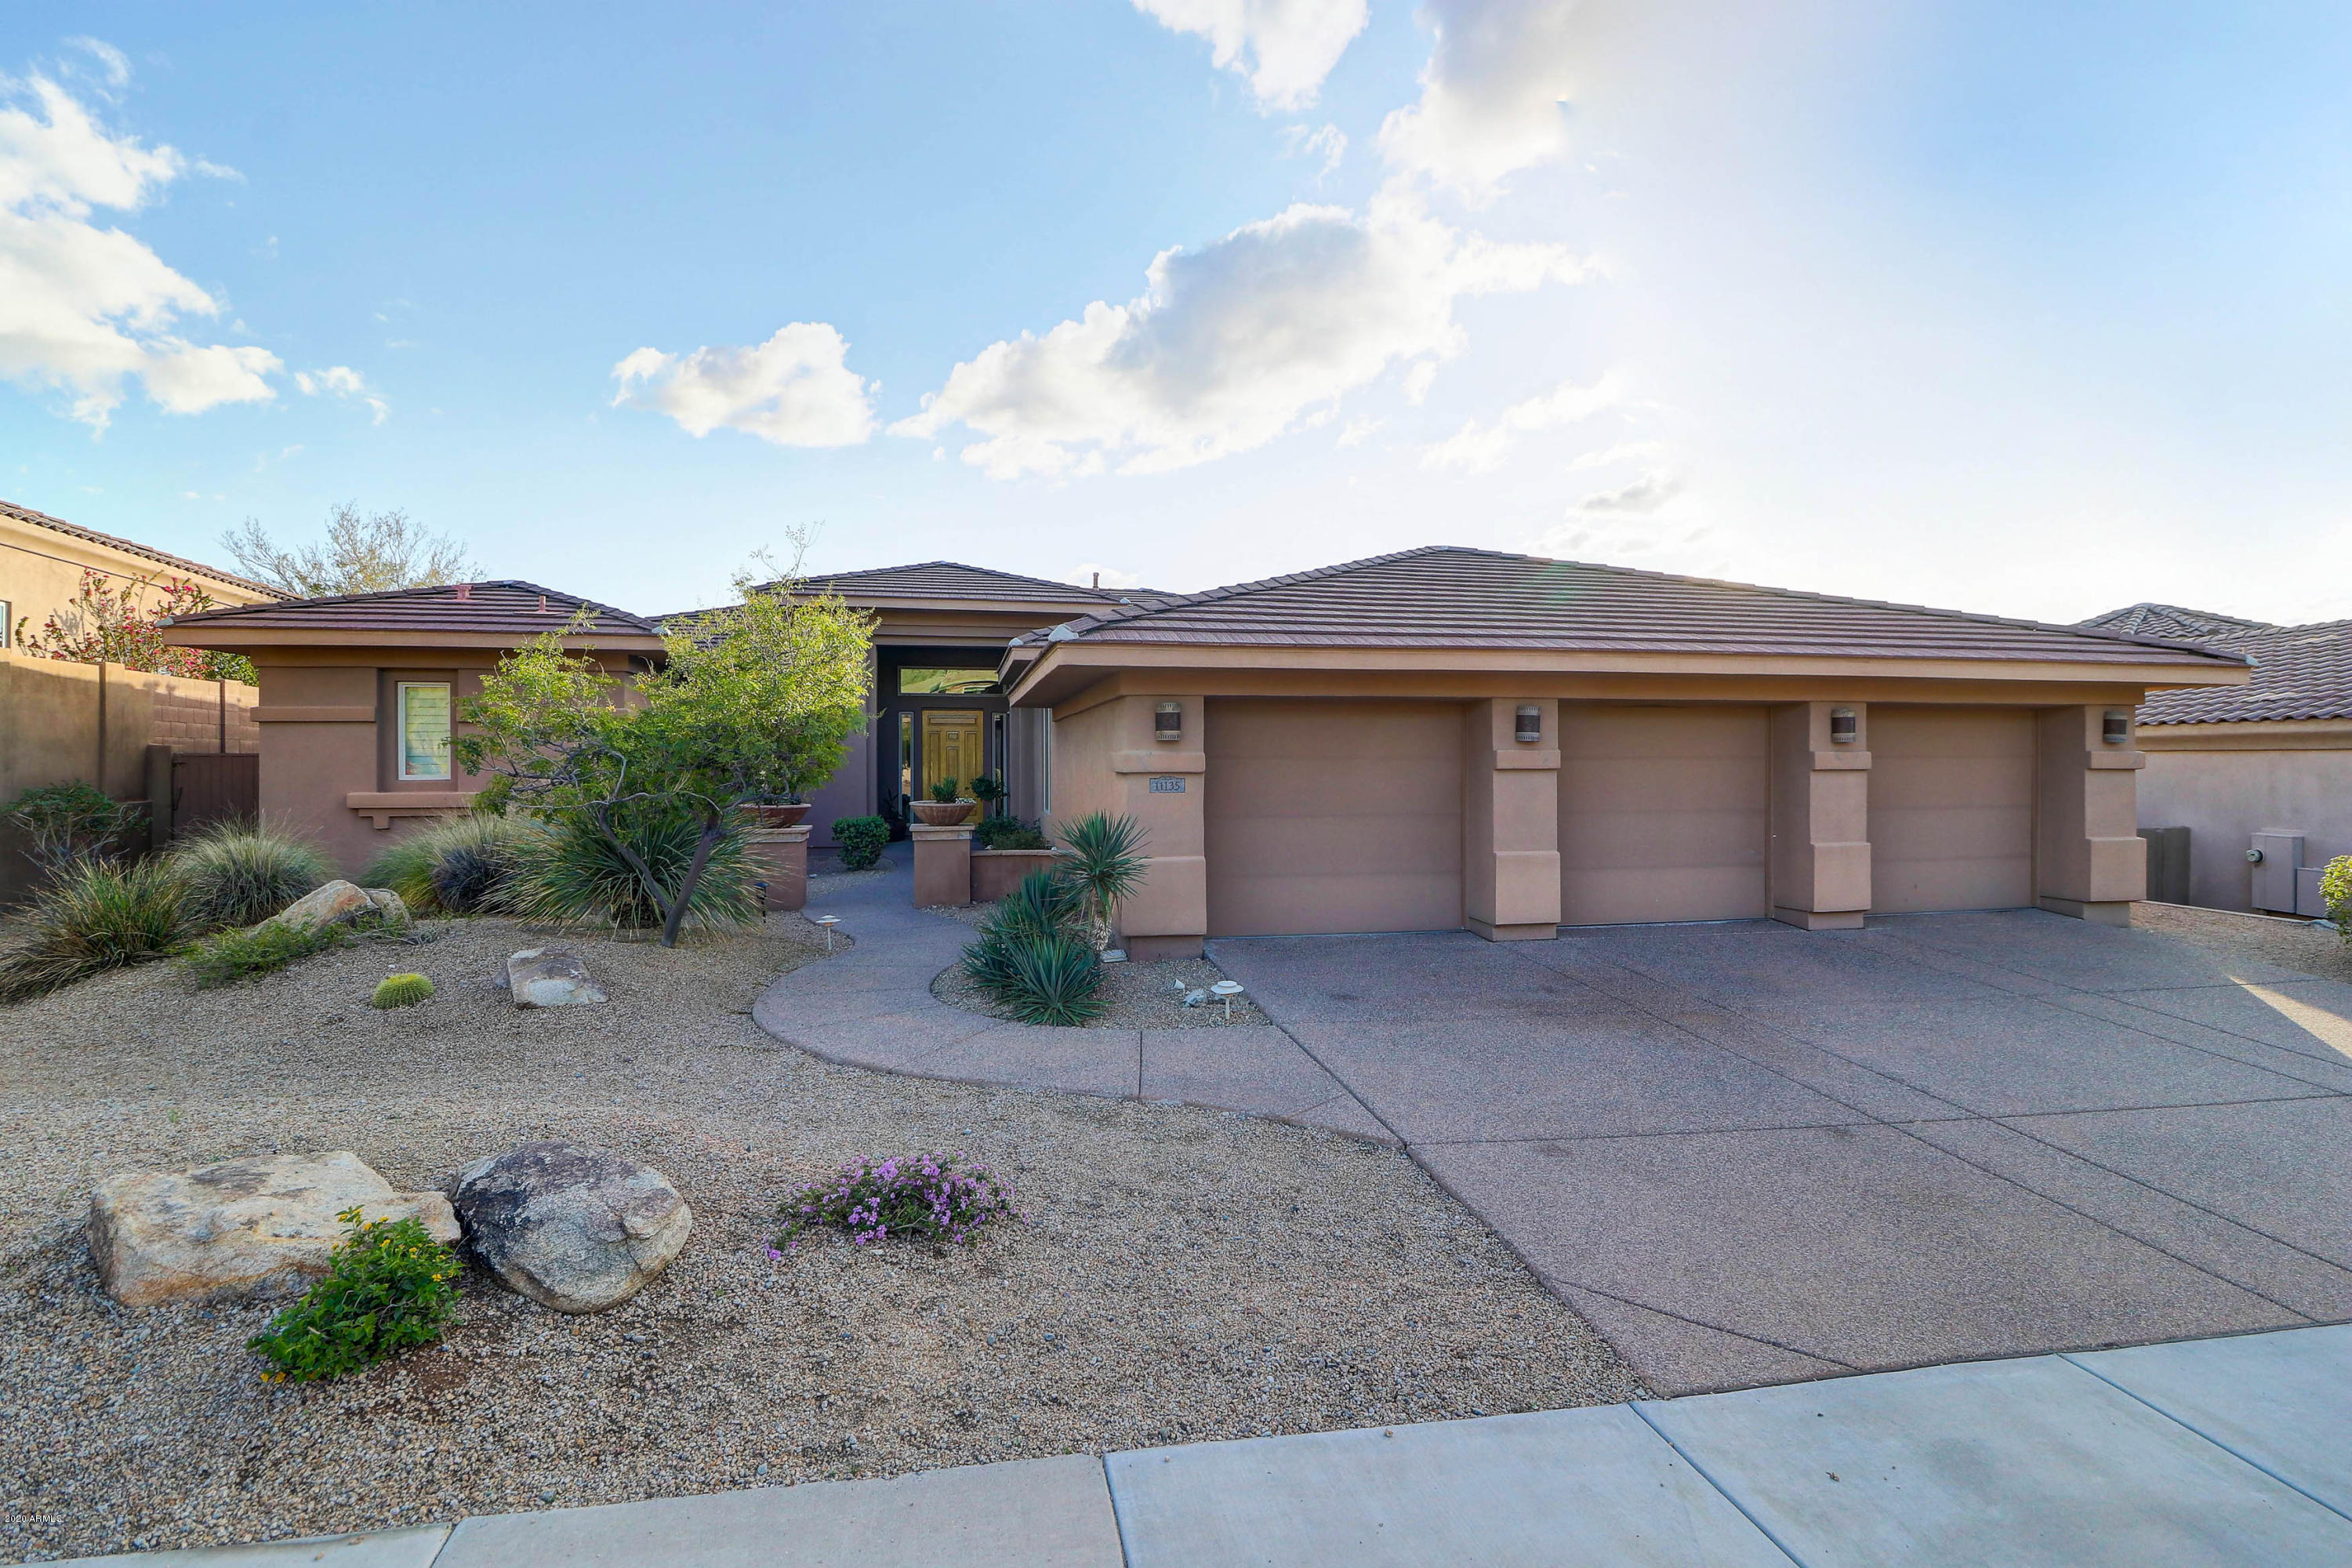 Photo of 11135 E GREENWAY Road, Scottsdale, AZ 85255